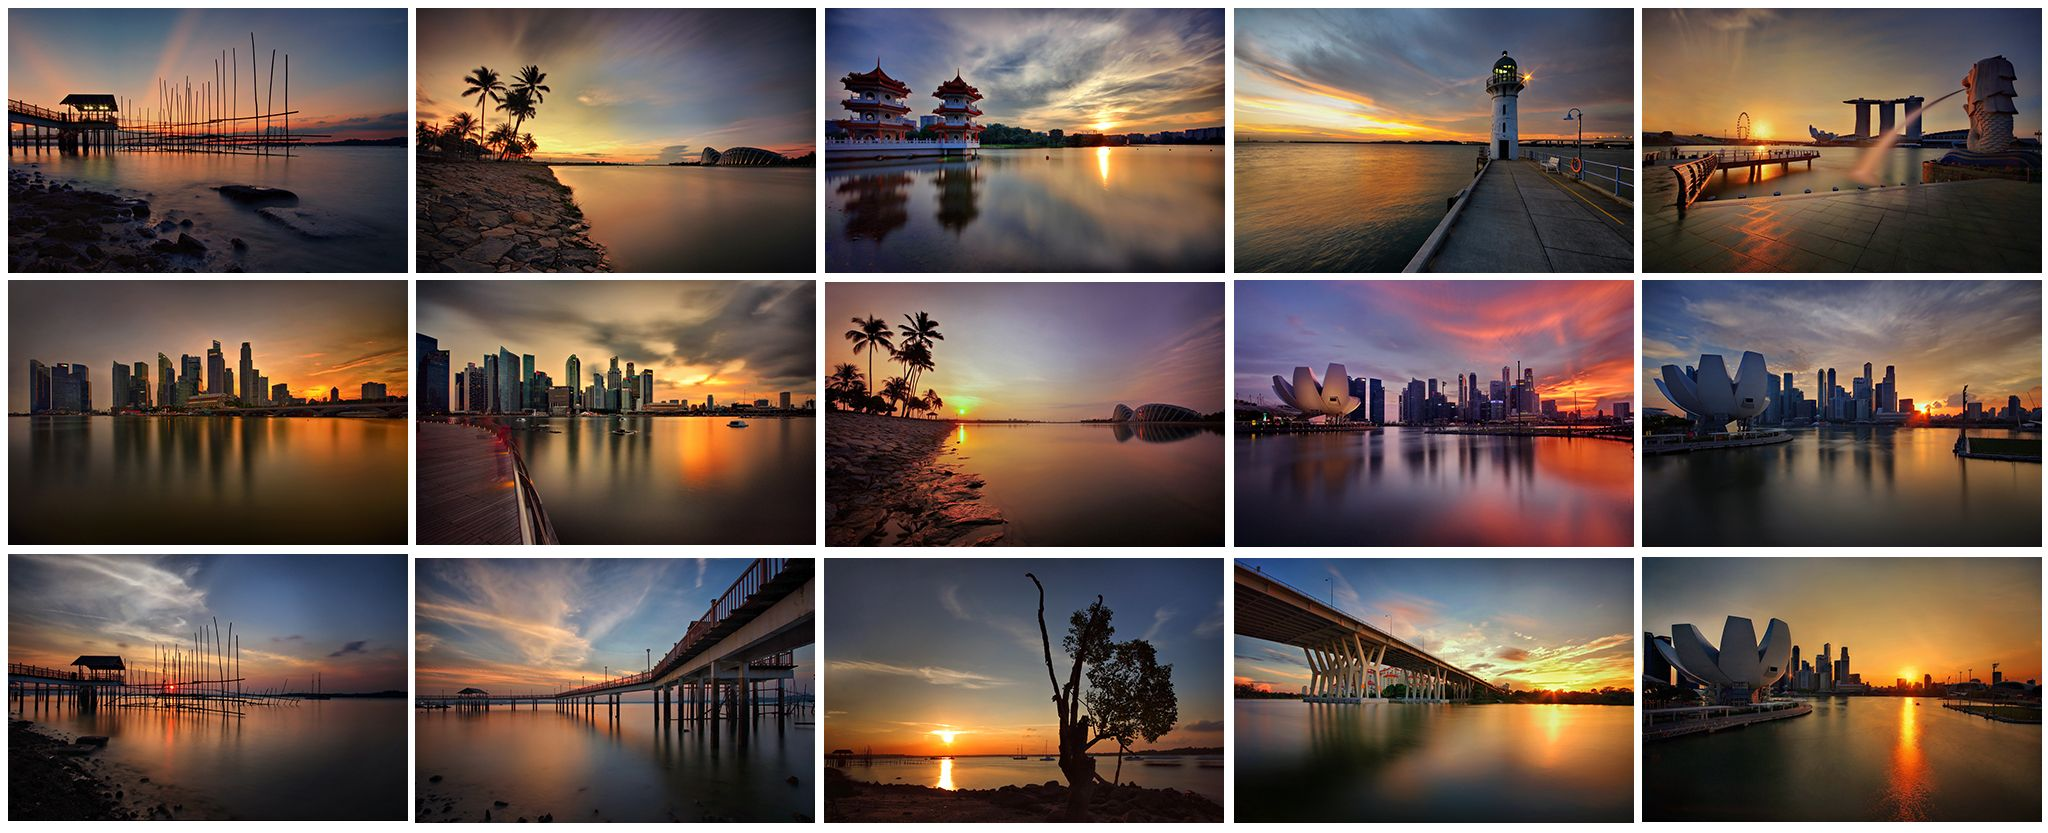 My Sunrise/Sunset Collection for the Year of 2013 by Ken Goh